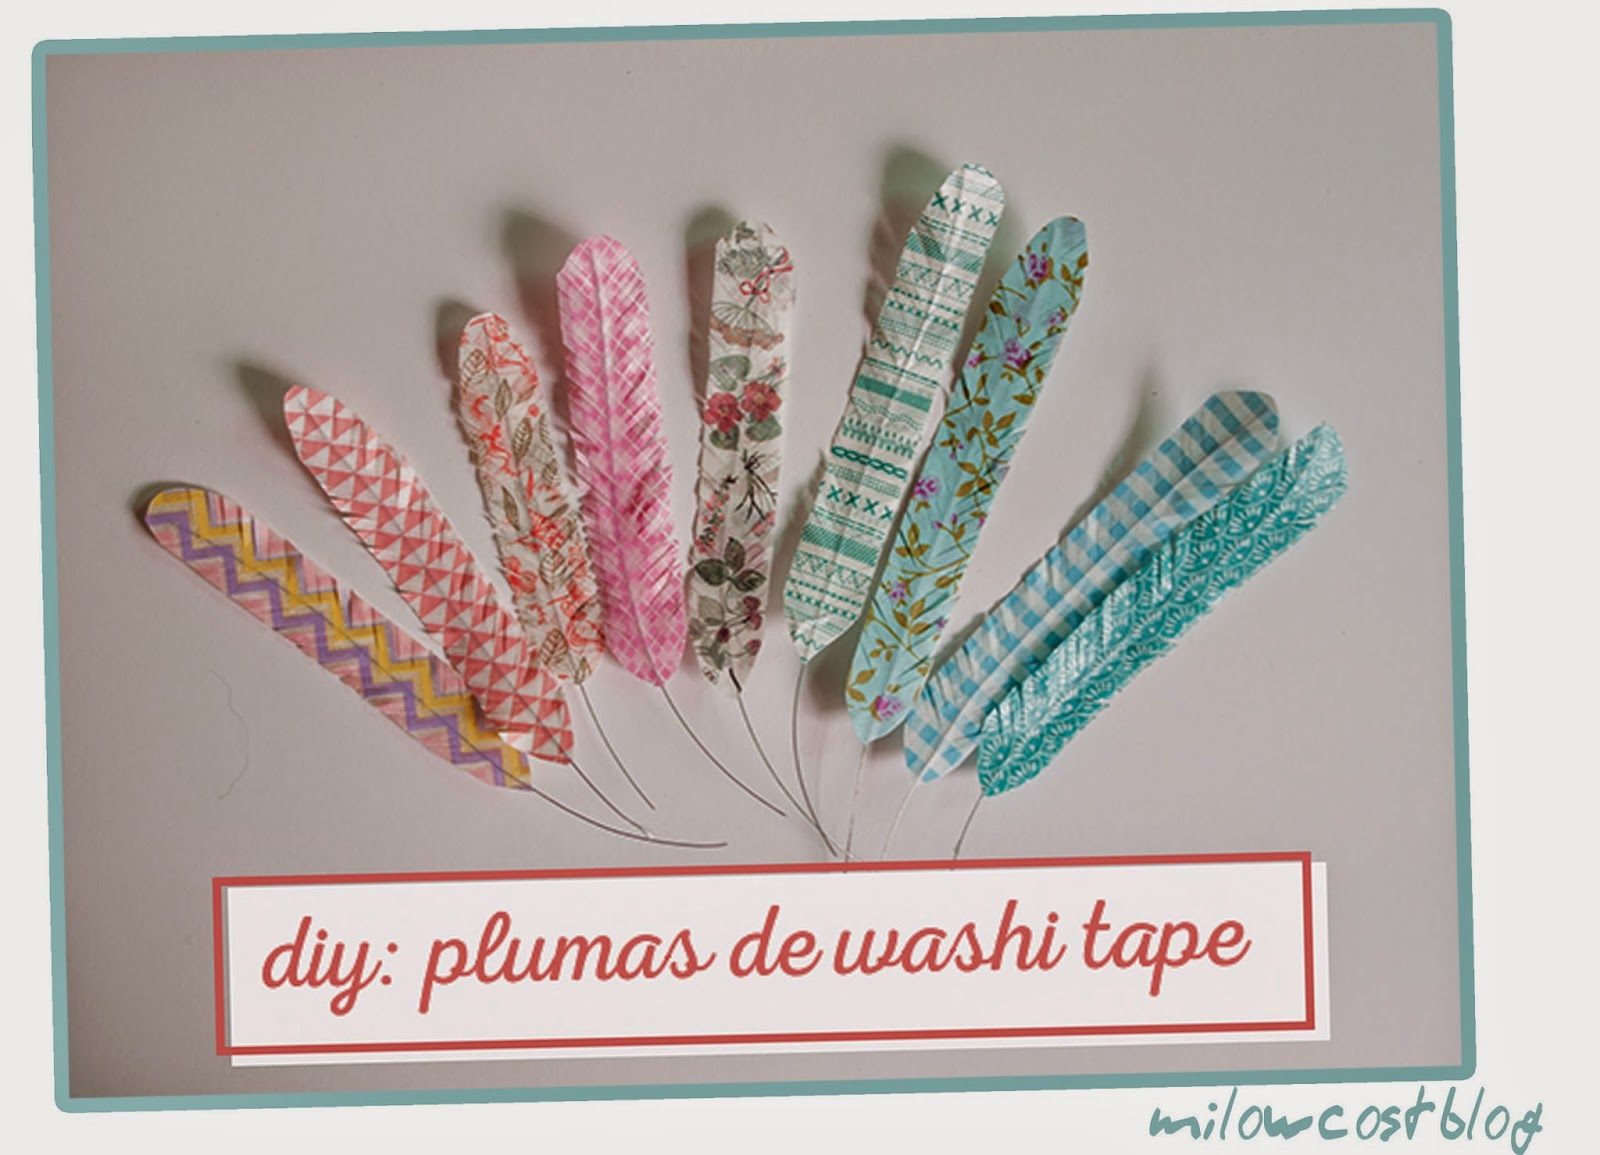 photo-milowcostblog-DIY-plumas